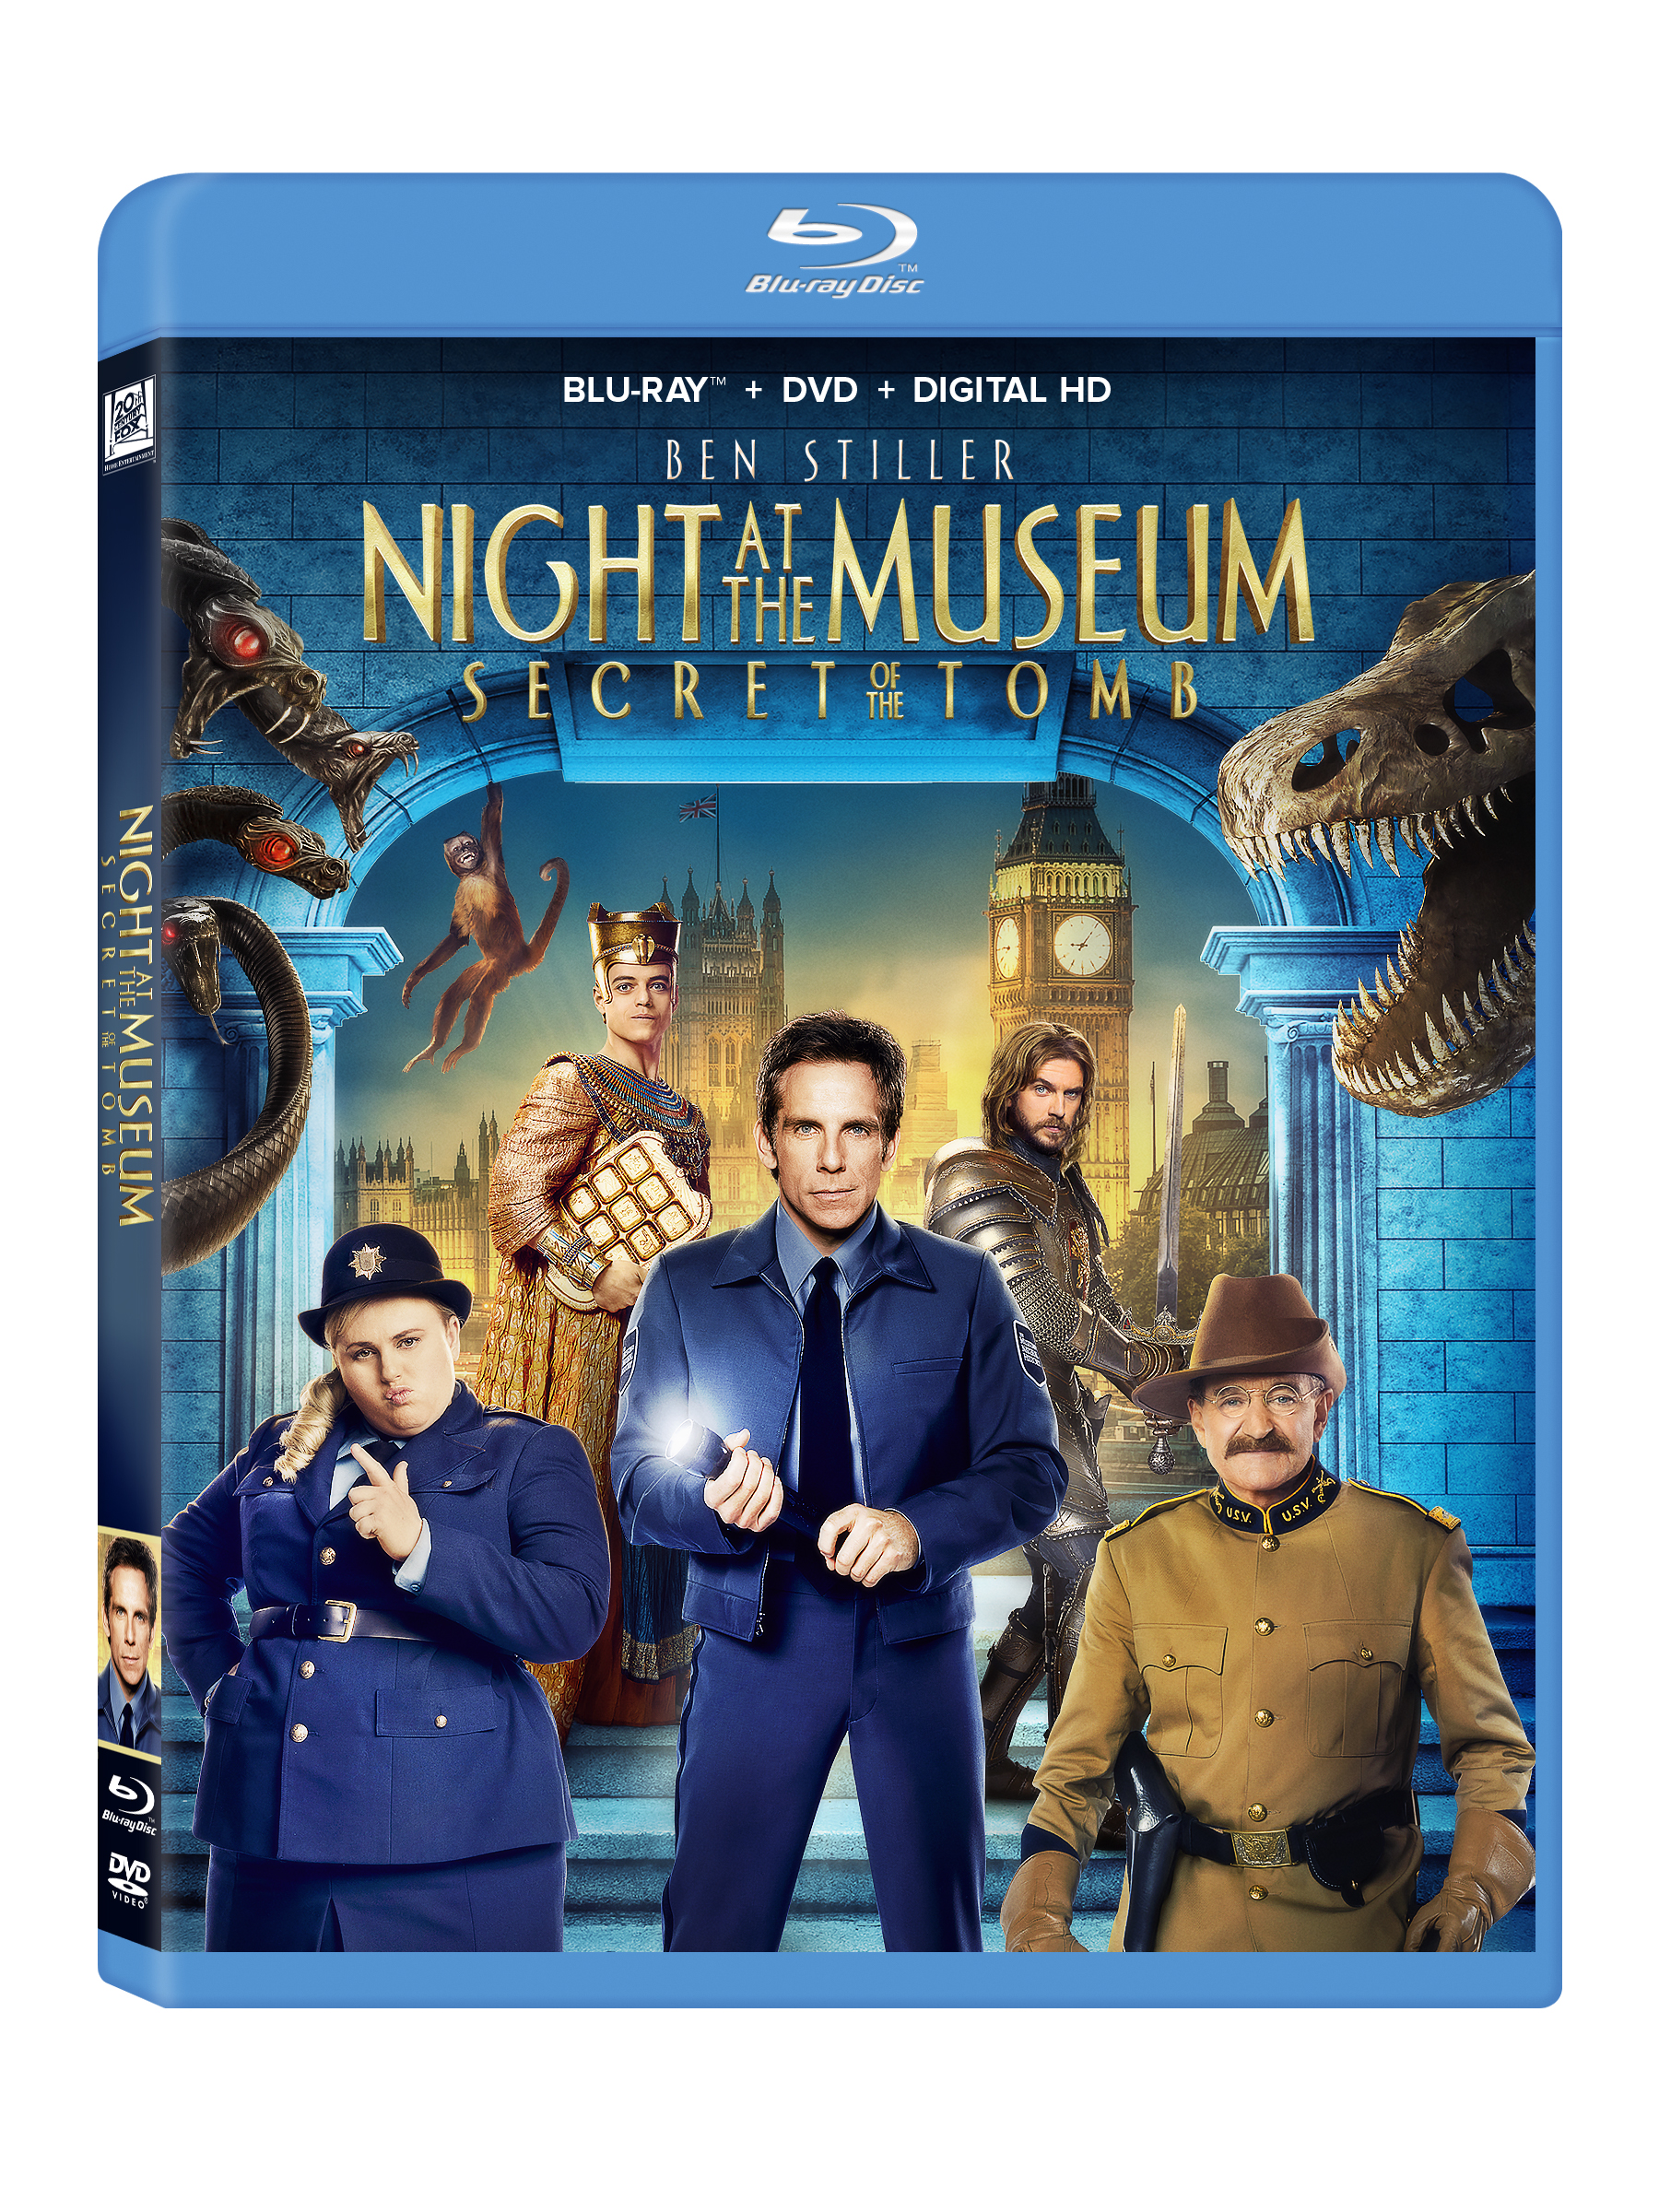 worksheet Night At The Museum Worksheets night at the museum secret of tomb blu ray giveaway one lucky bragging mommy reader will win on ray